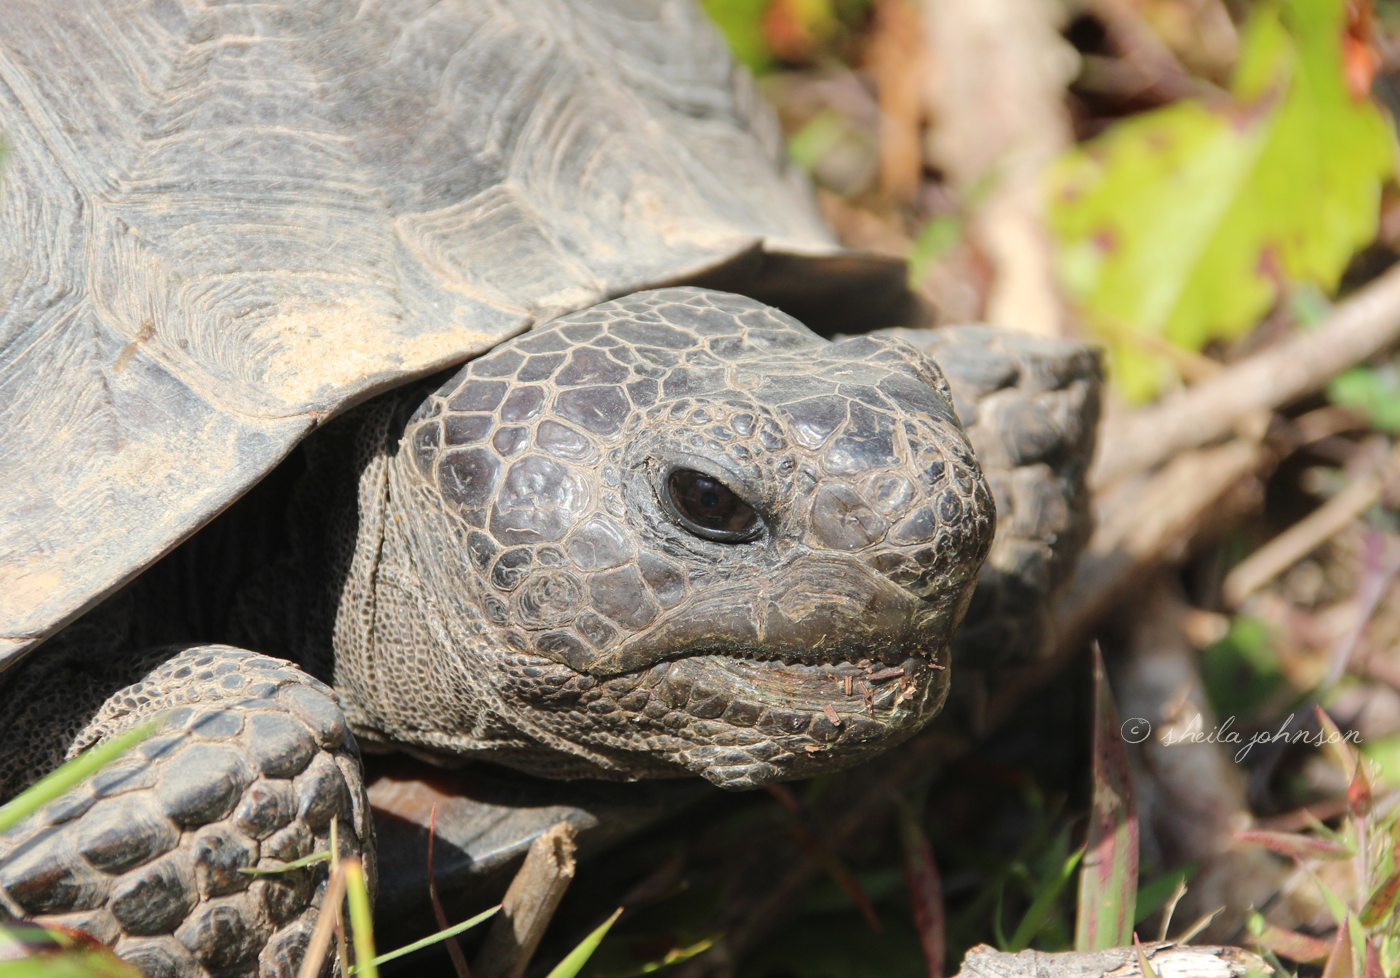 In The Wild, It's Estimated That Gopher Tortoises Live Up To 60 Years. In Captivity, They've Lived To Be 100 Years Old. This One Lives At Halpatioke Regional Park, Stuart, Florida.